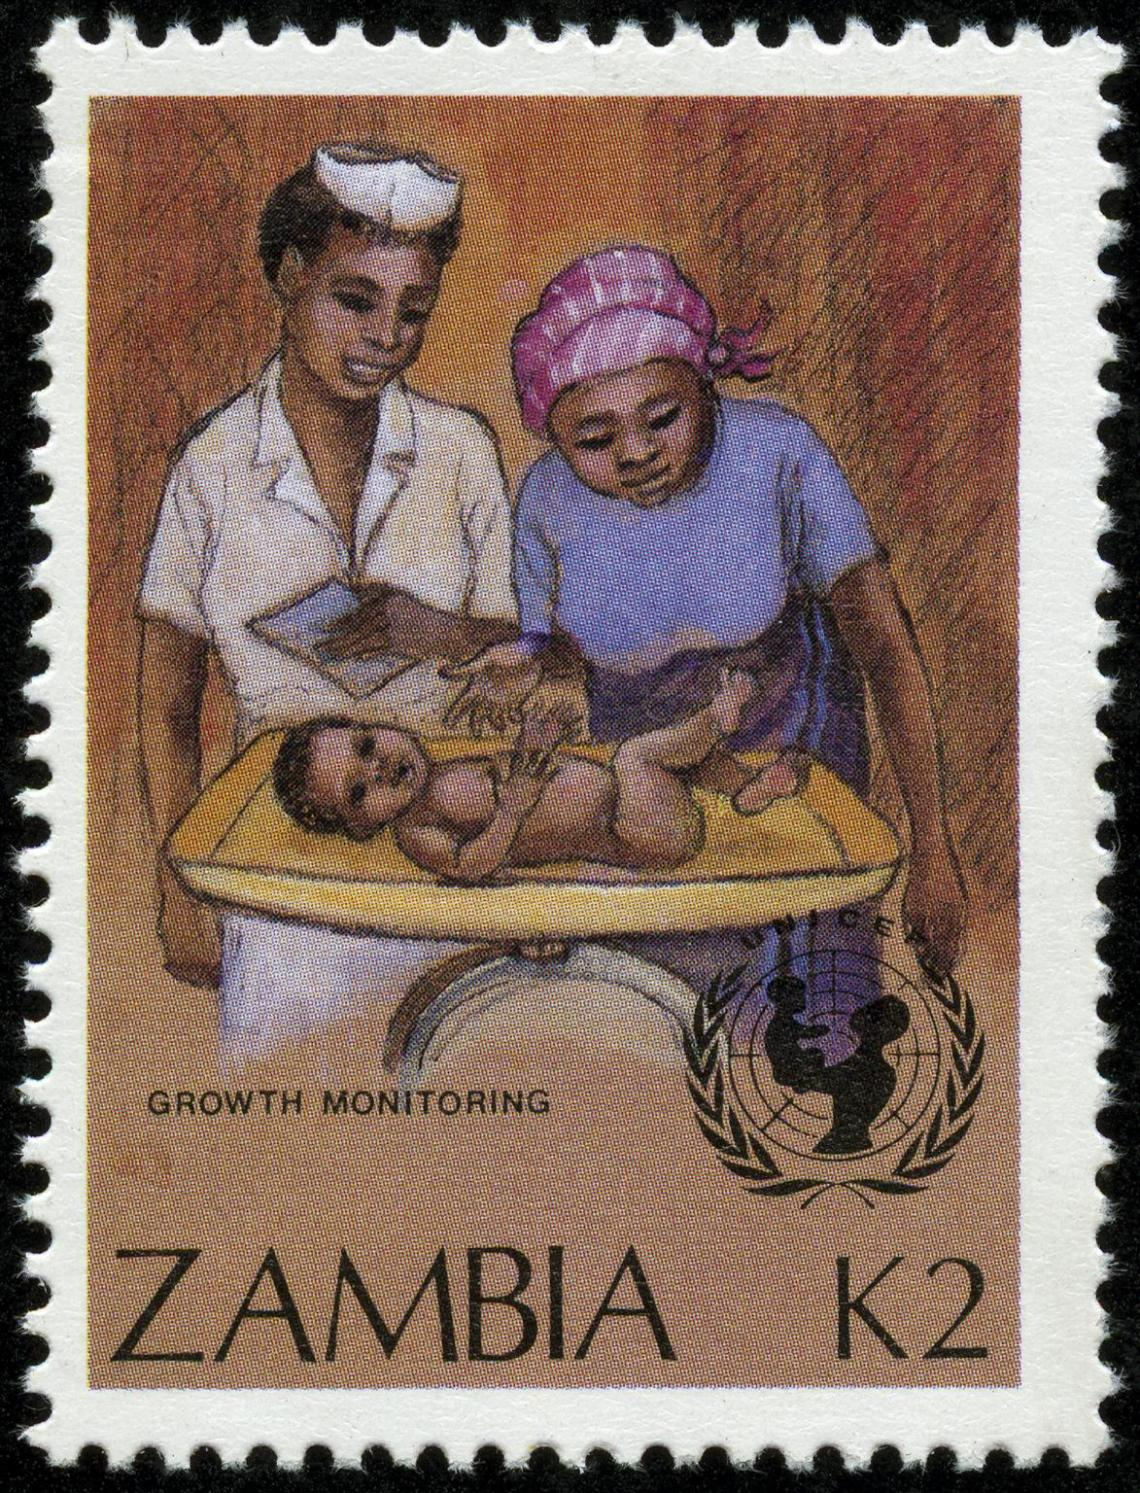 Postage stamp shows nurse and mother looking at baby